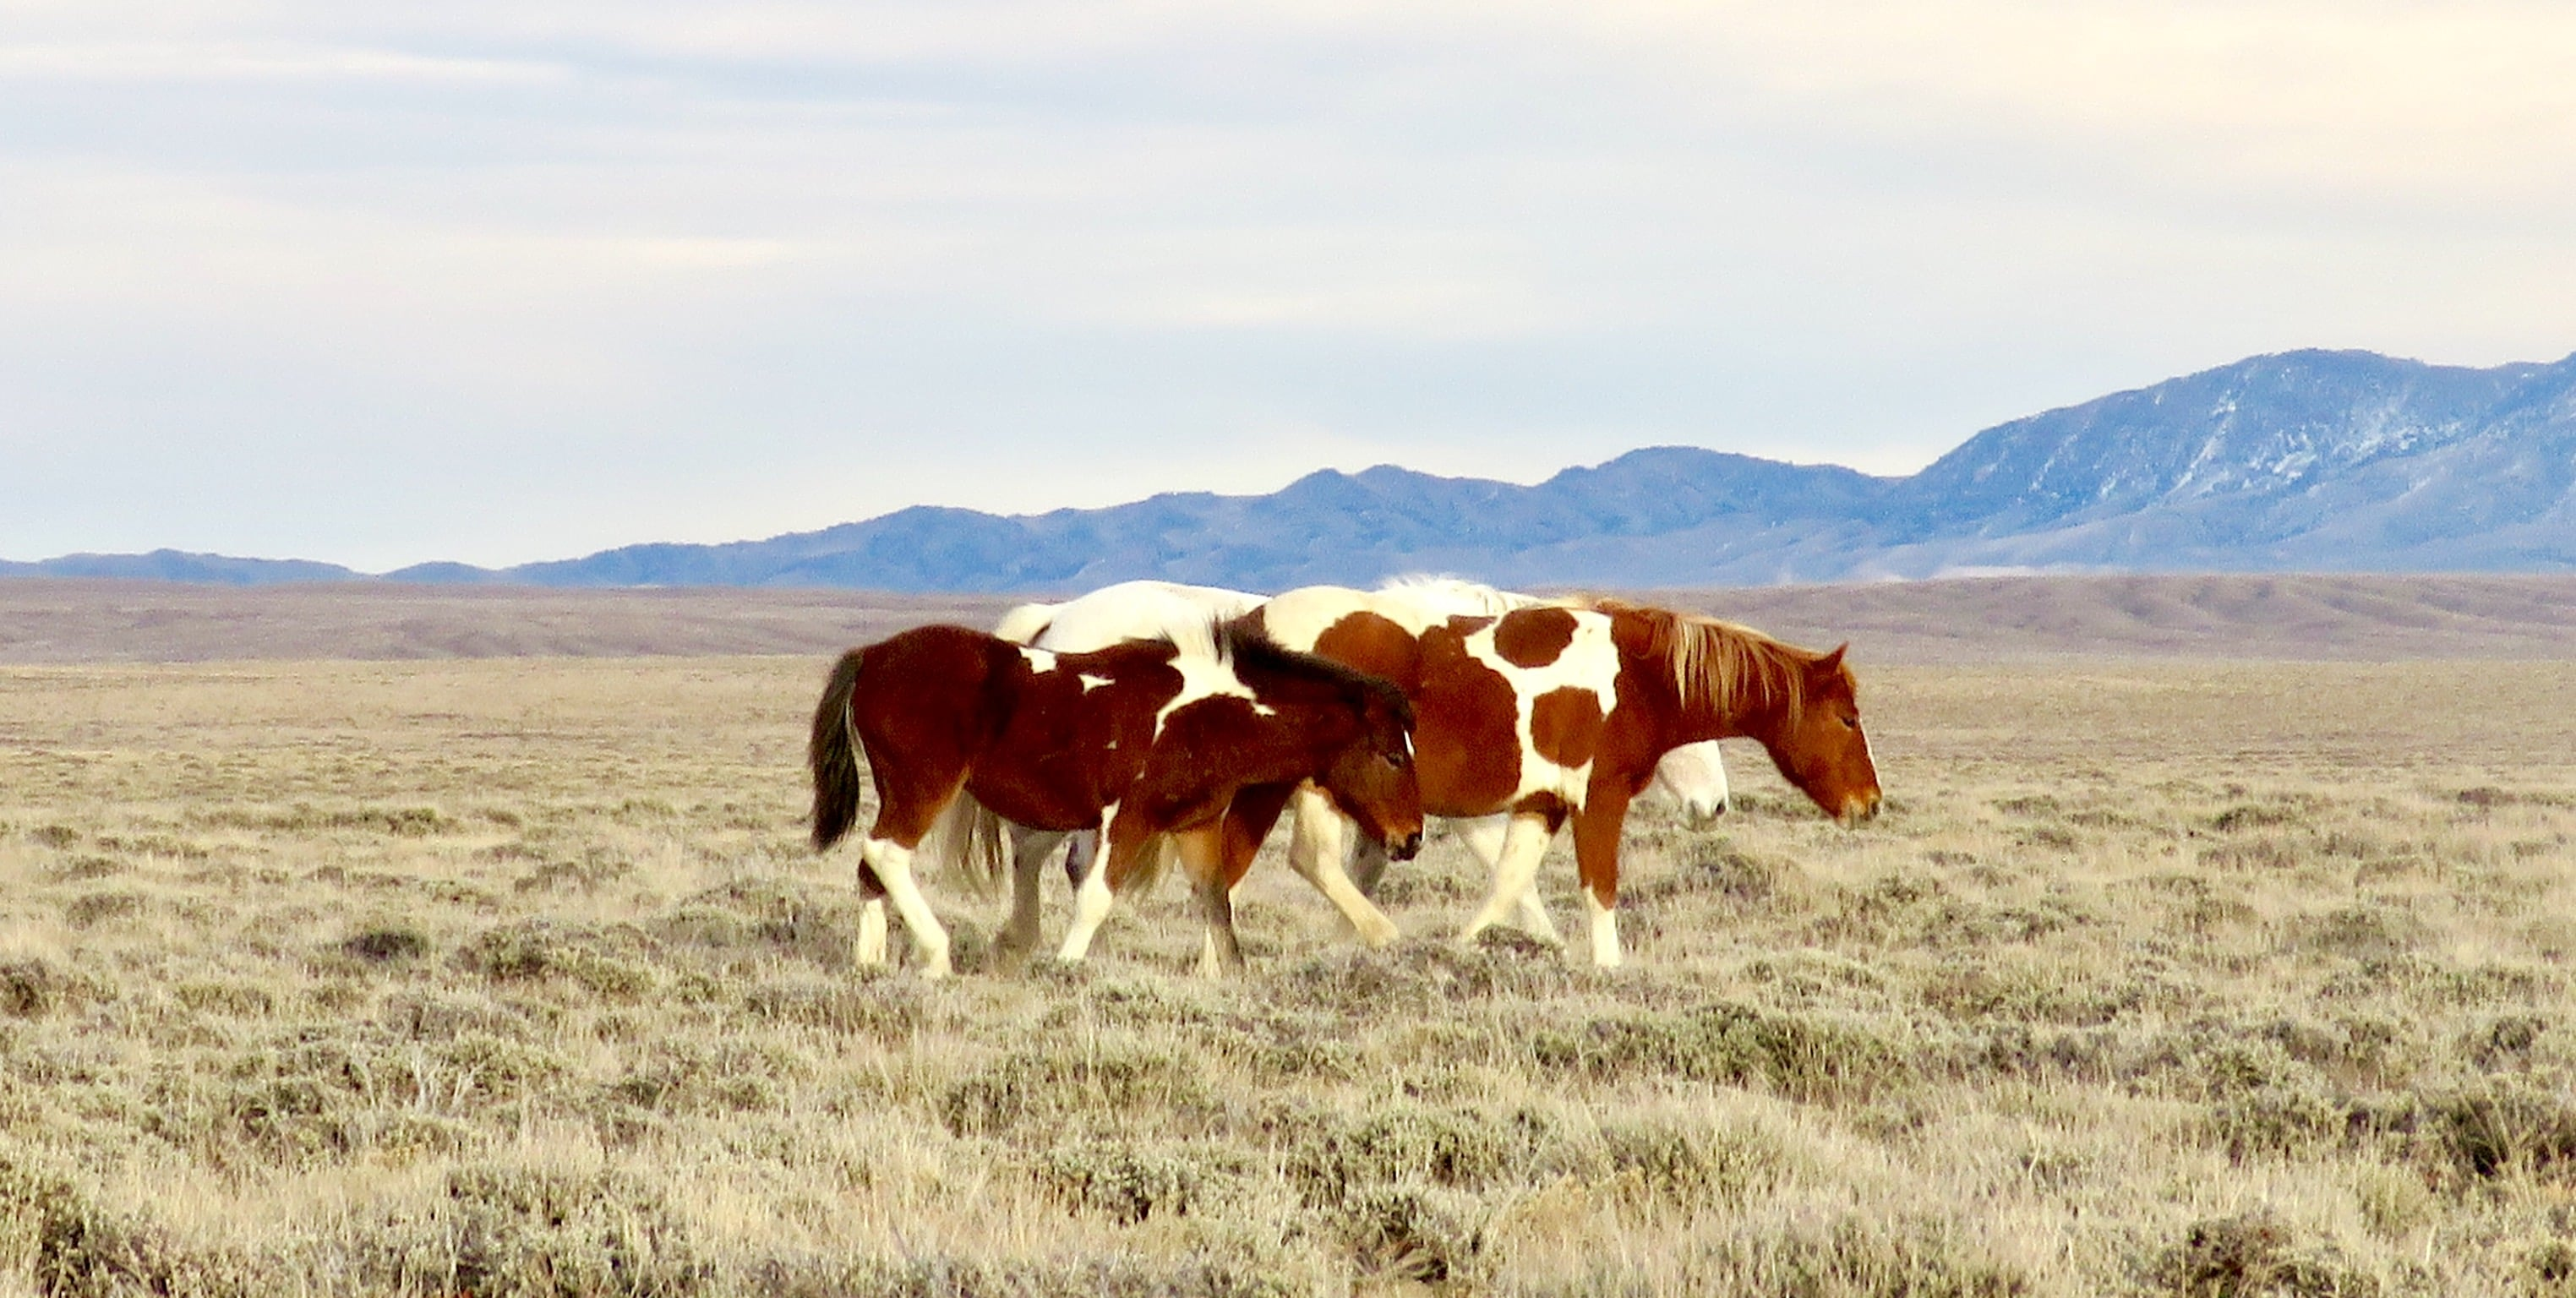 Three wild horses in the field